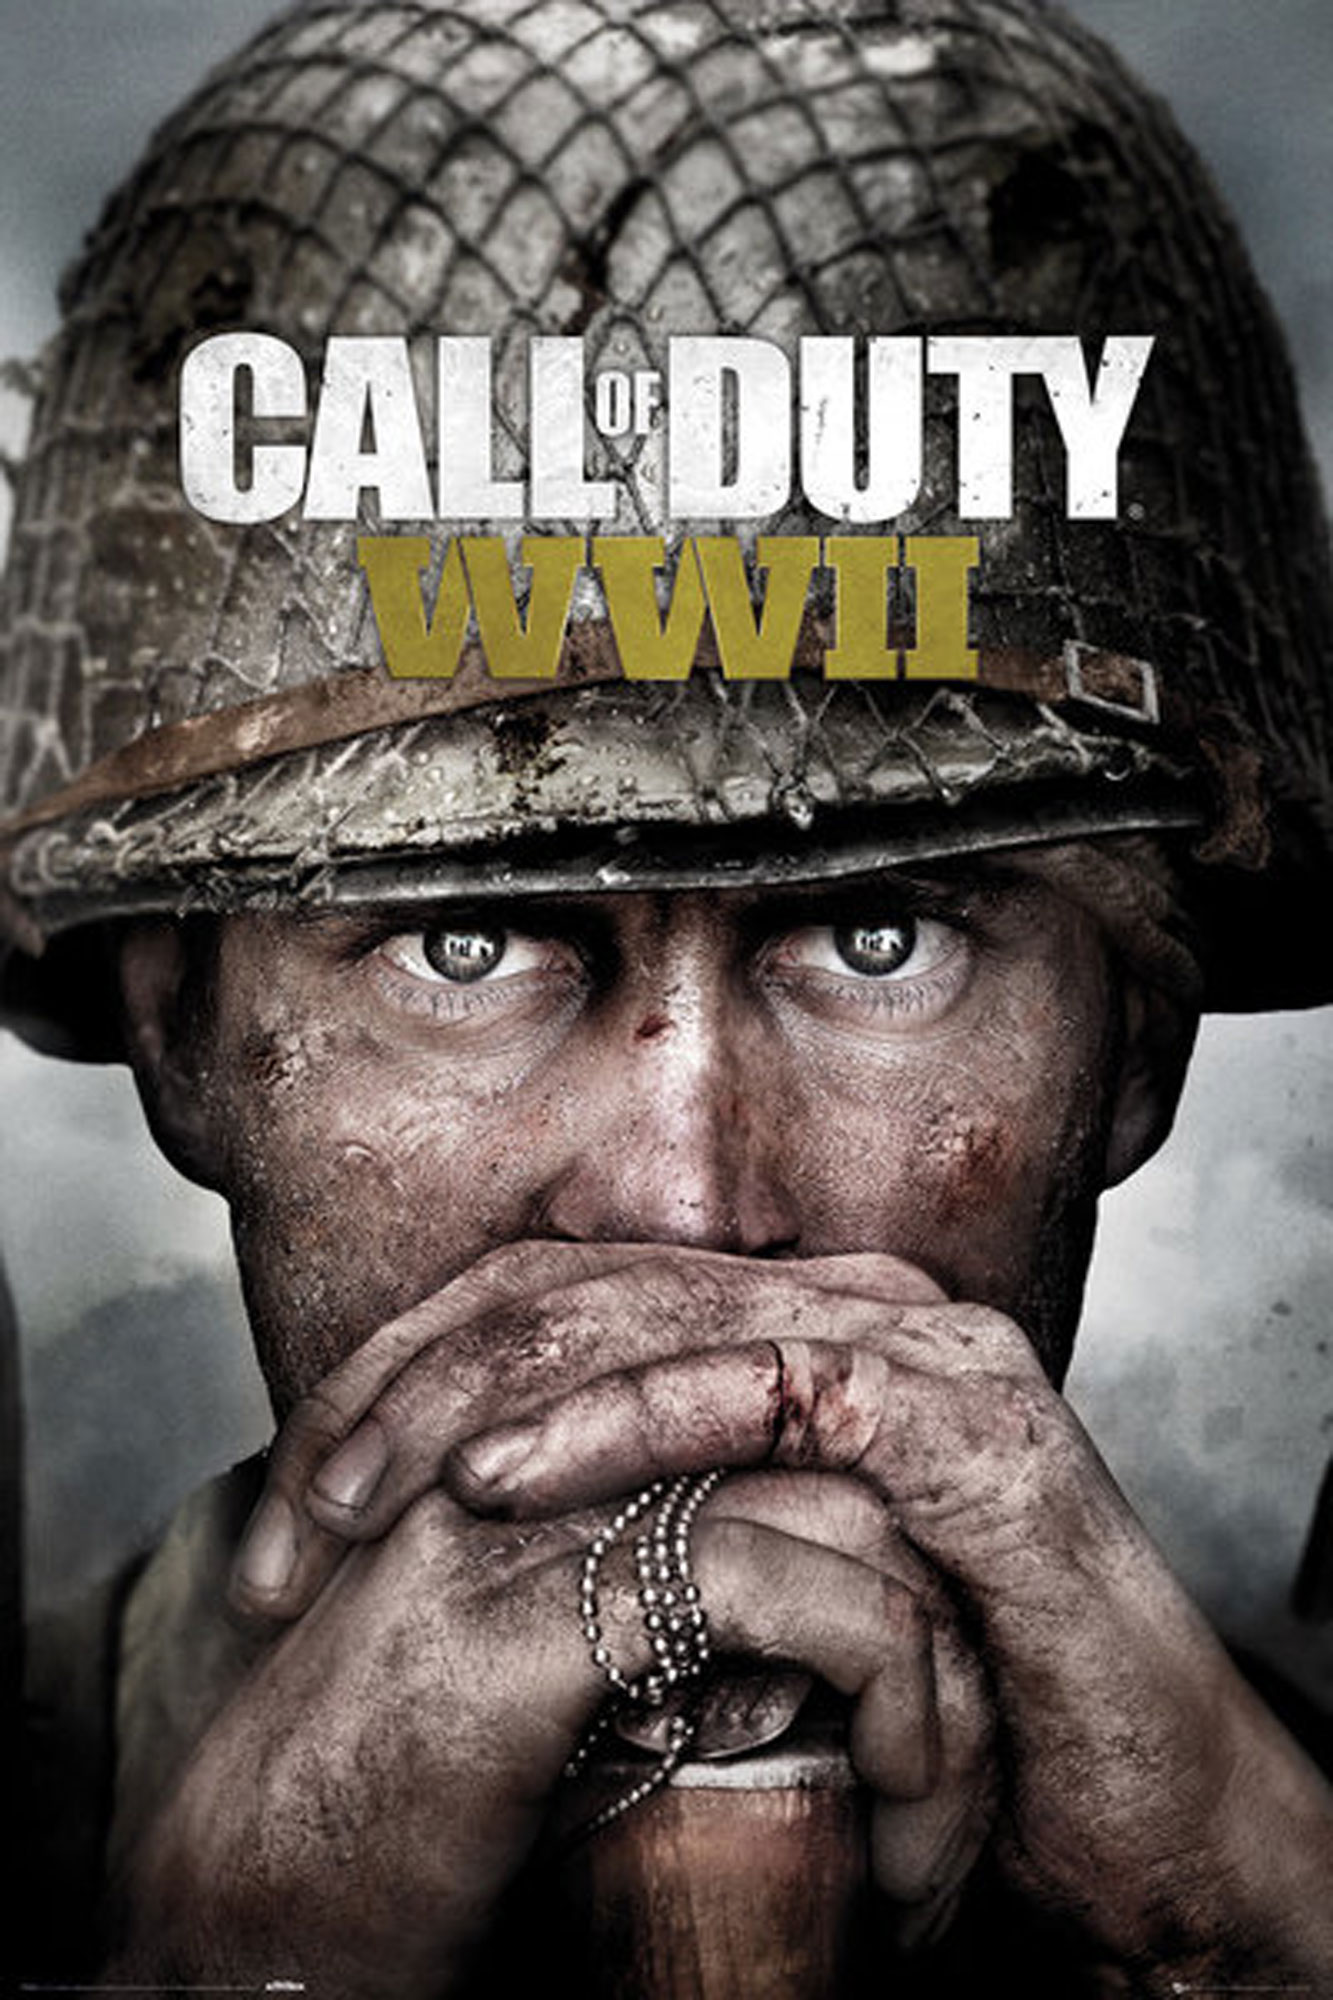 Call Of Duty - Poster - Stronghold - WWII Key Art